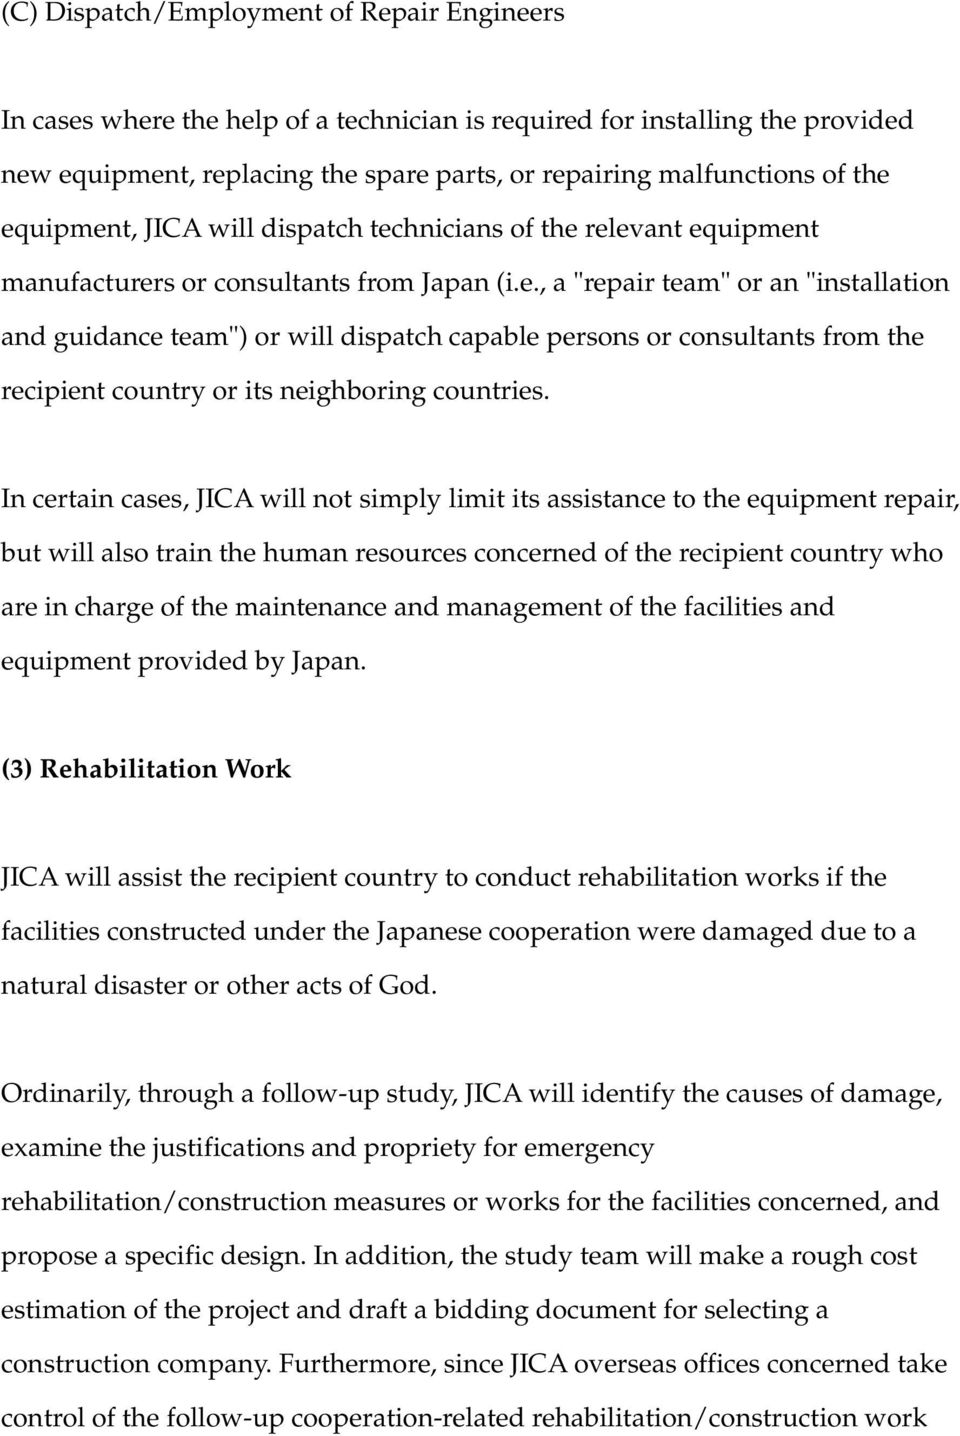 In certain cases, JICA will not simply limit its assistance to the equipment repair, but will also train the human resources concerned of the recipient country who are in charge of the maintenance